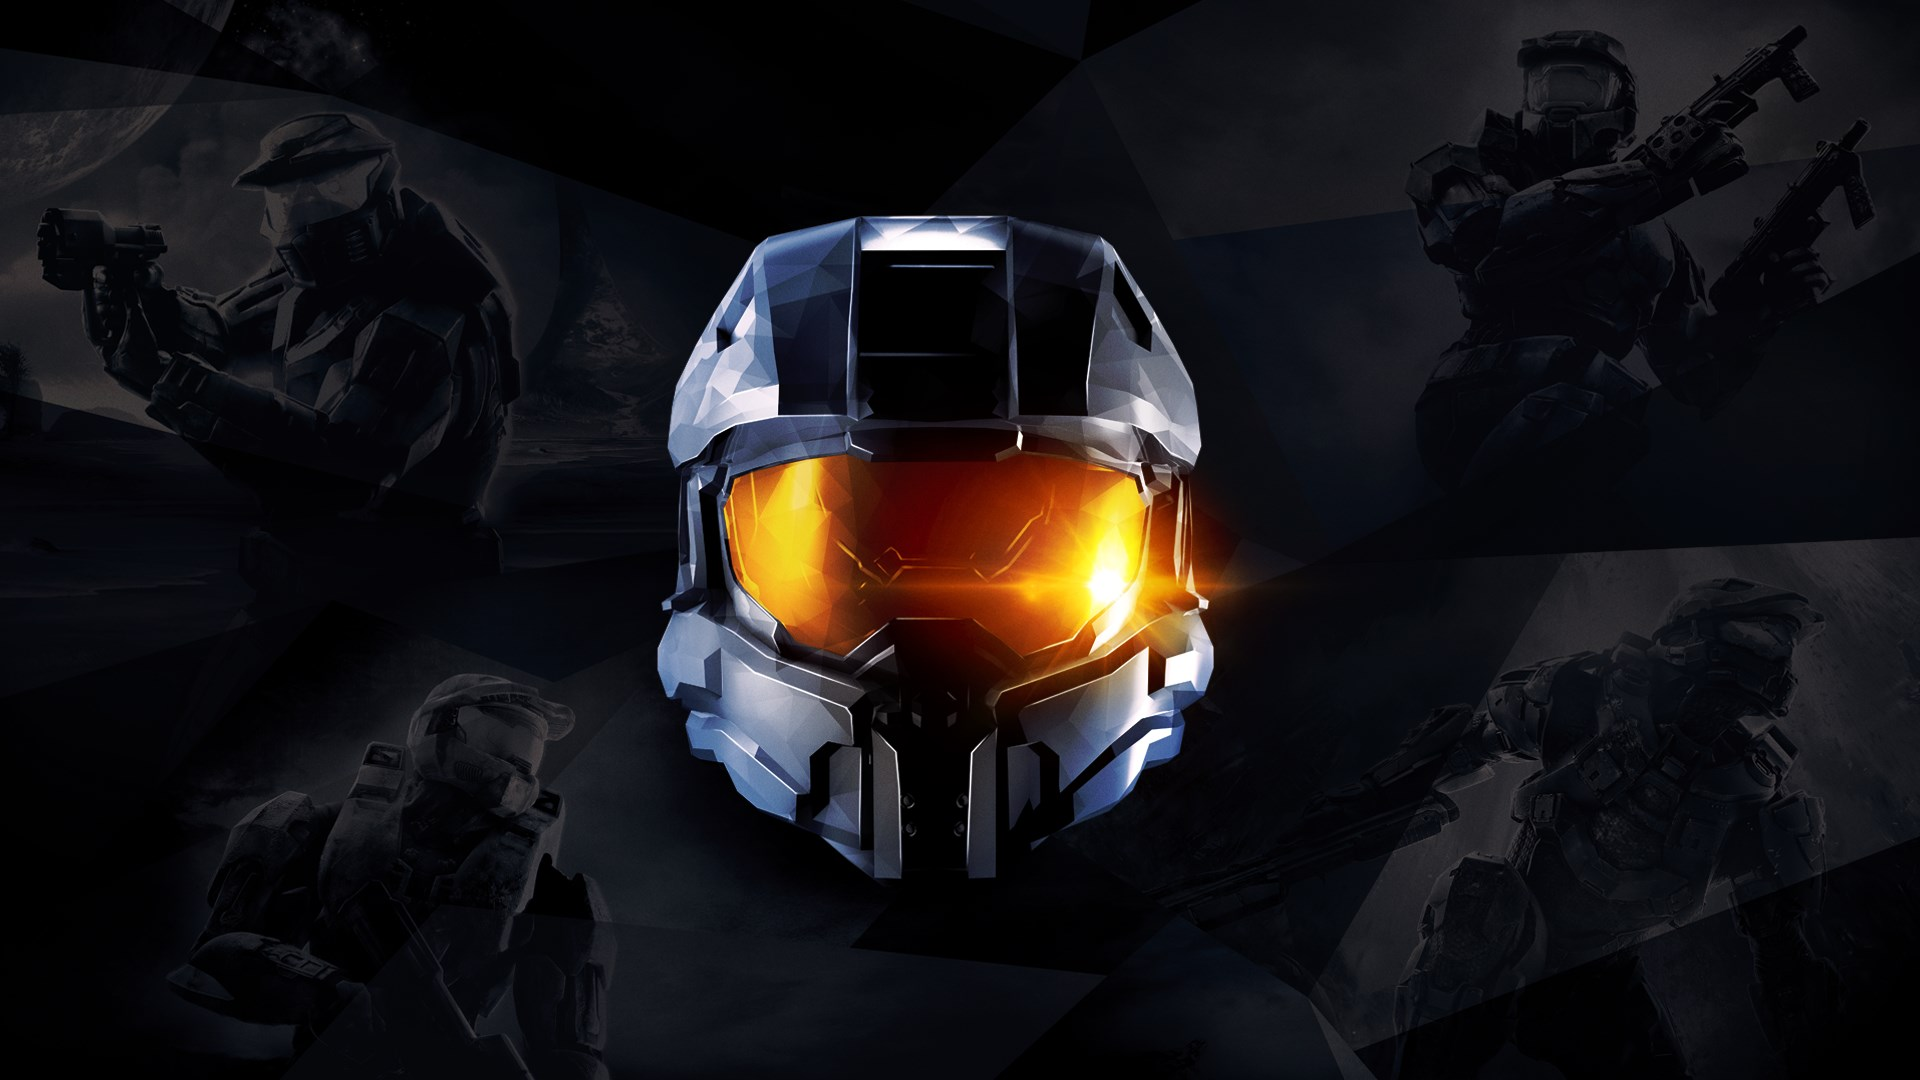 Halo: The Master Chief Collection update